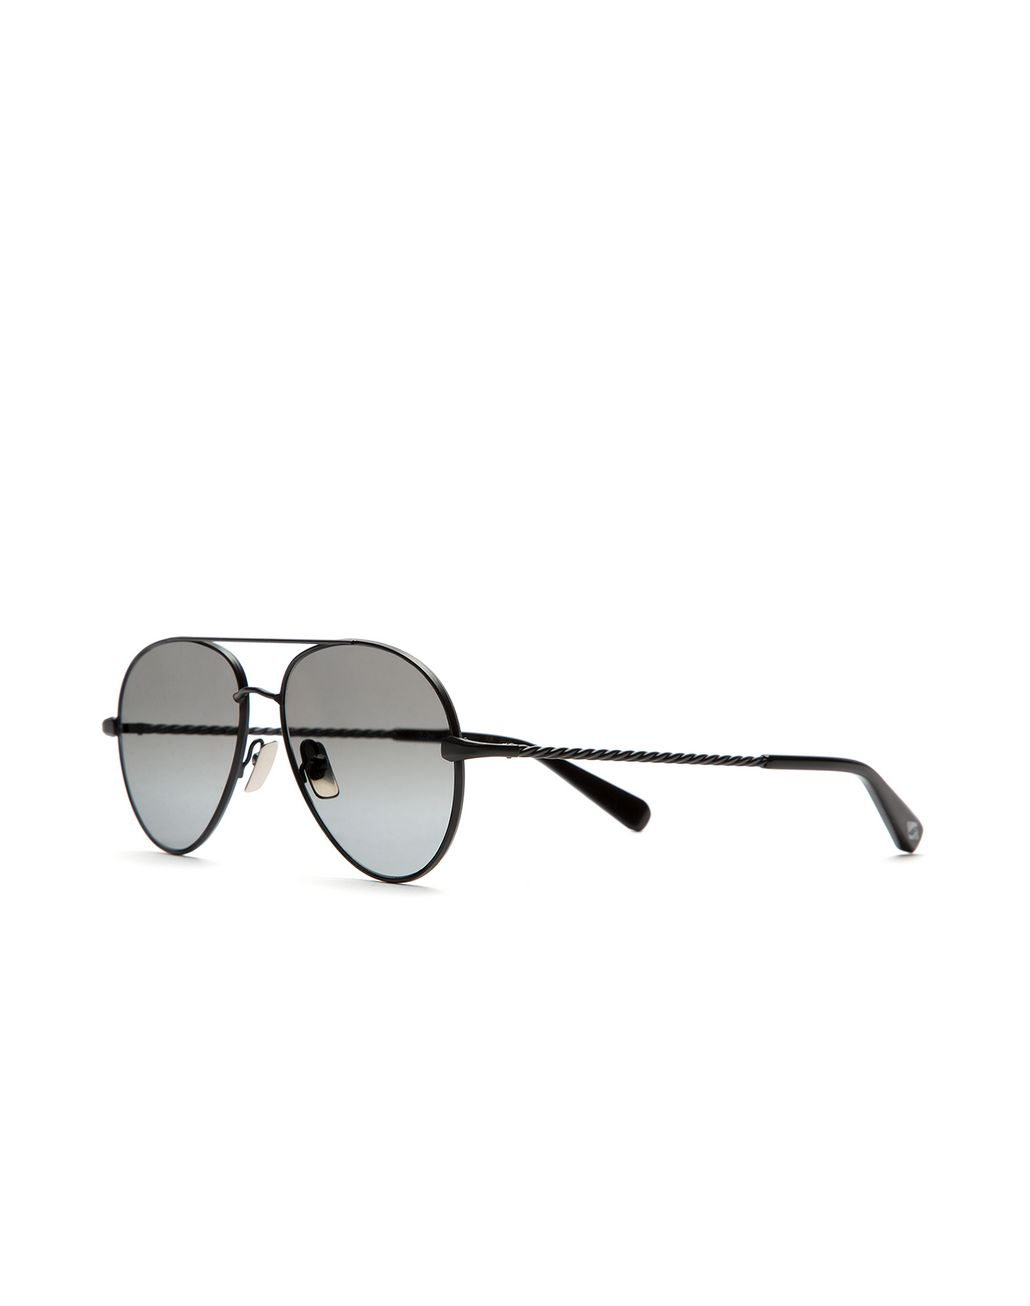 BRIONI Silver Black Aviator Sunglasses with Gray Lenses Sunglasses U r